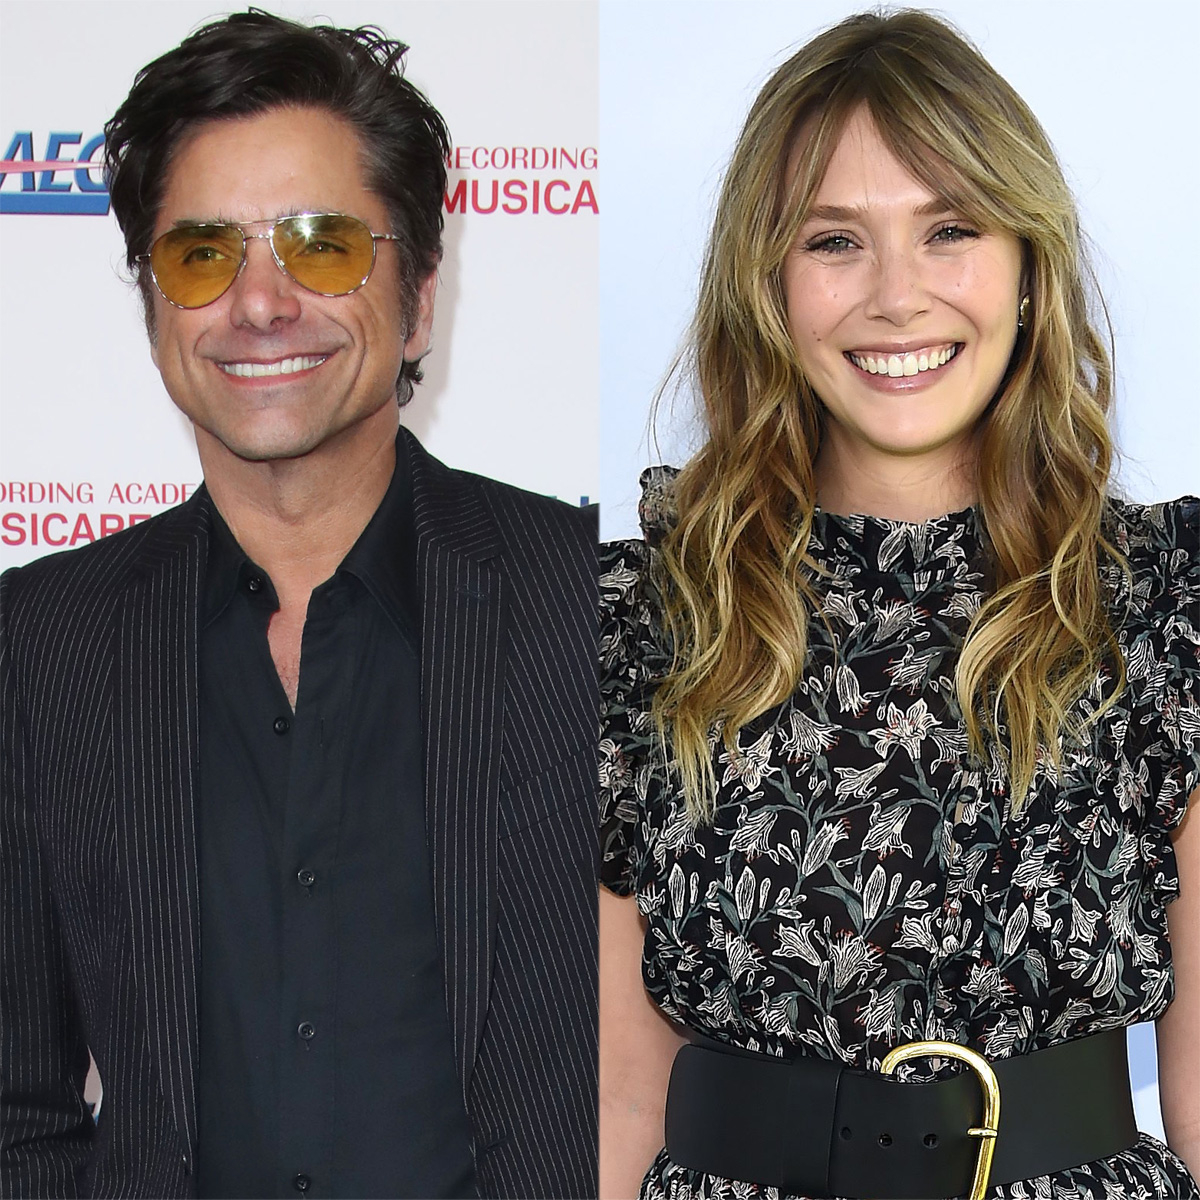 John Stamos Shares Unseen Full House Photo With Elizabeth Olsen Ahead of WandaVision Finale